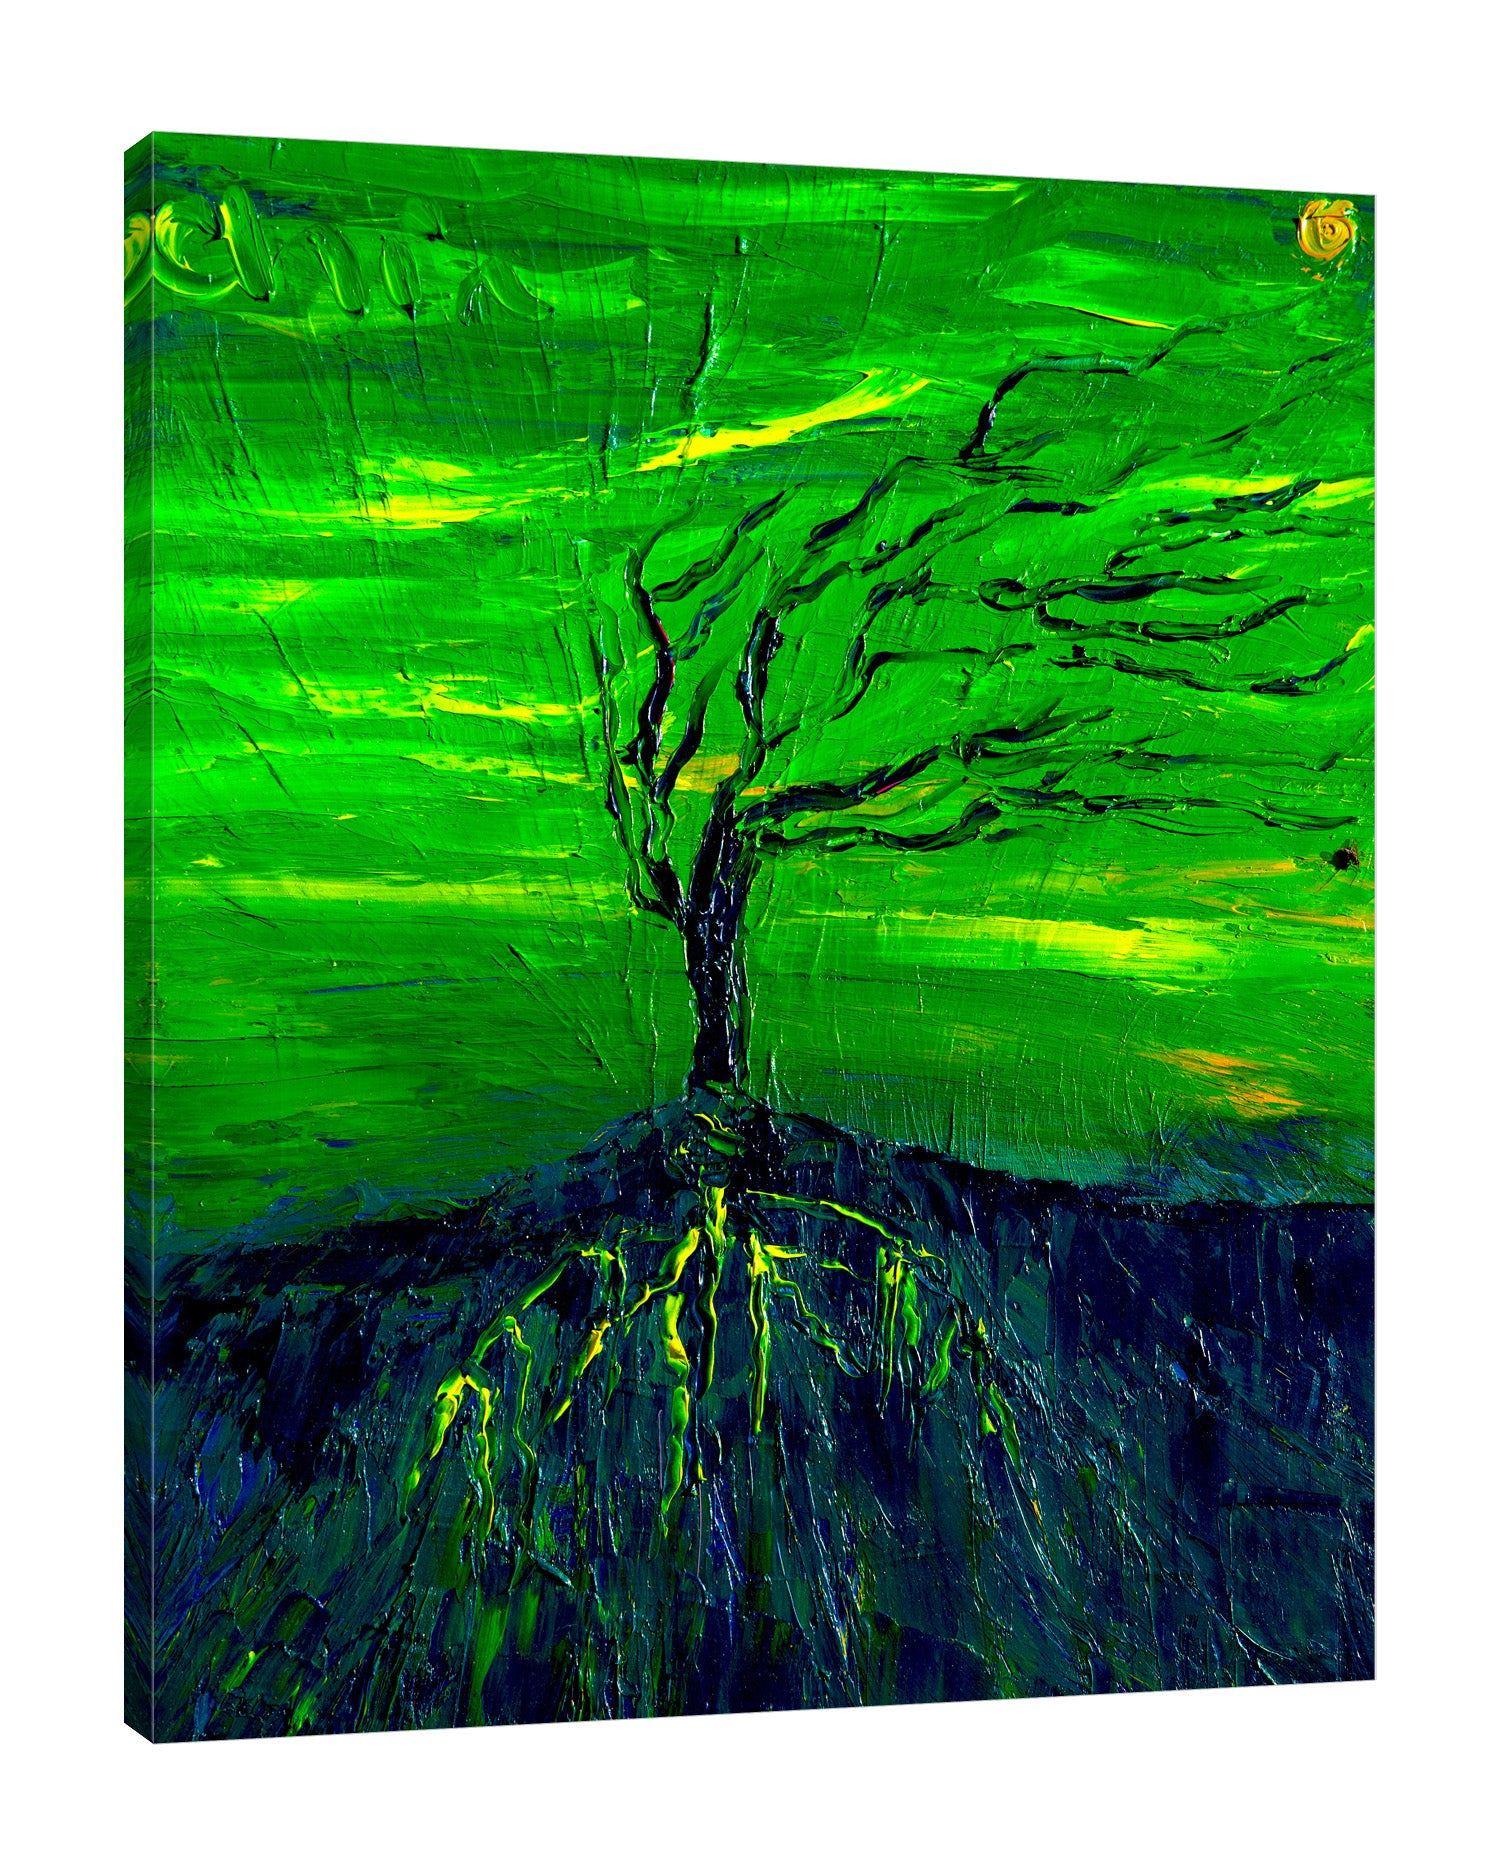 Chiara-Magni,Modern & Contemporary,Landscape & Nature,Finger-paint,green,tree,branch,black,blue,yellow,